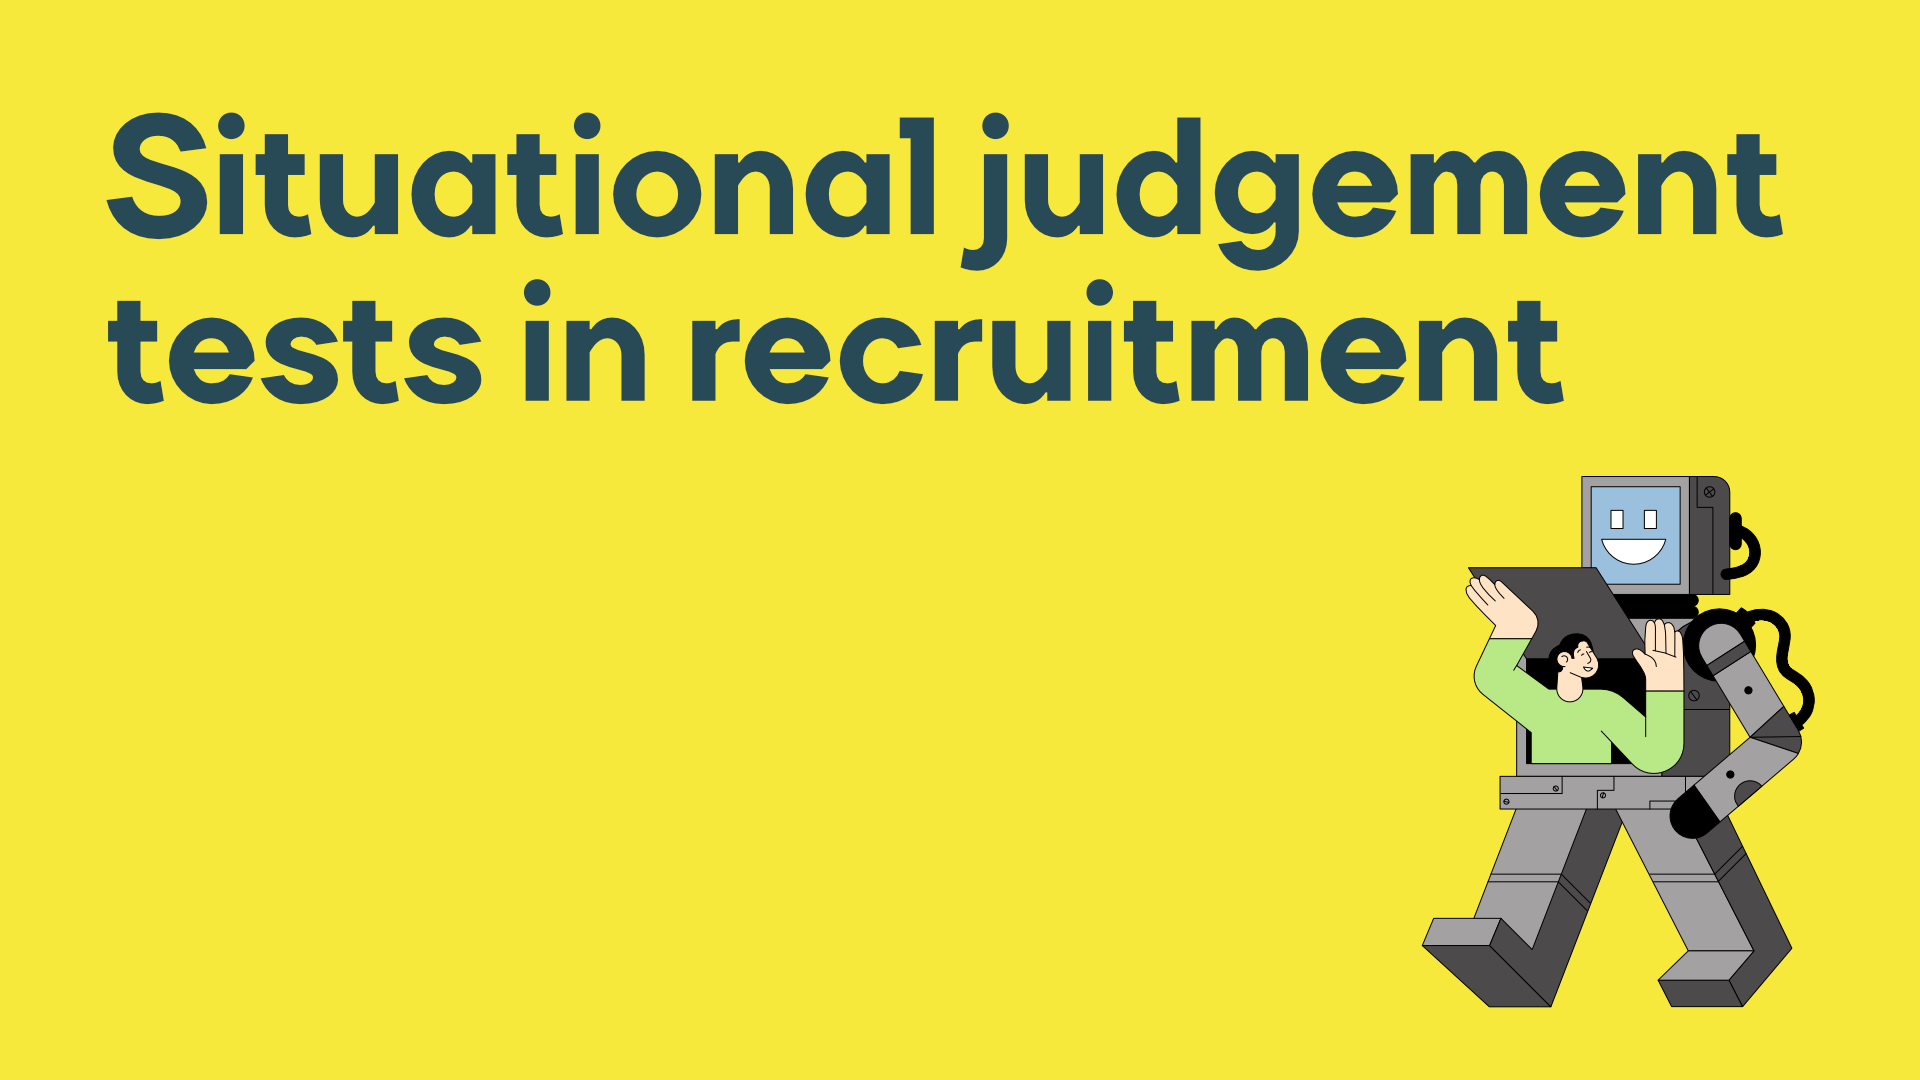 Using situational judgement tests in recruitment